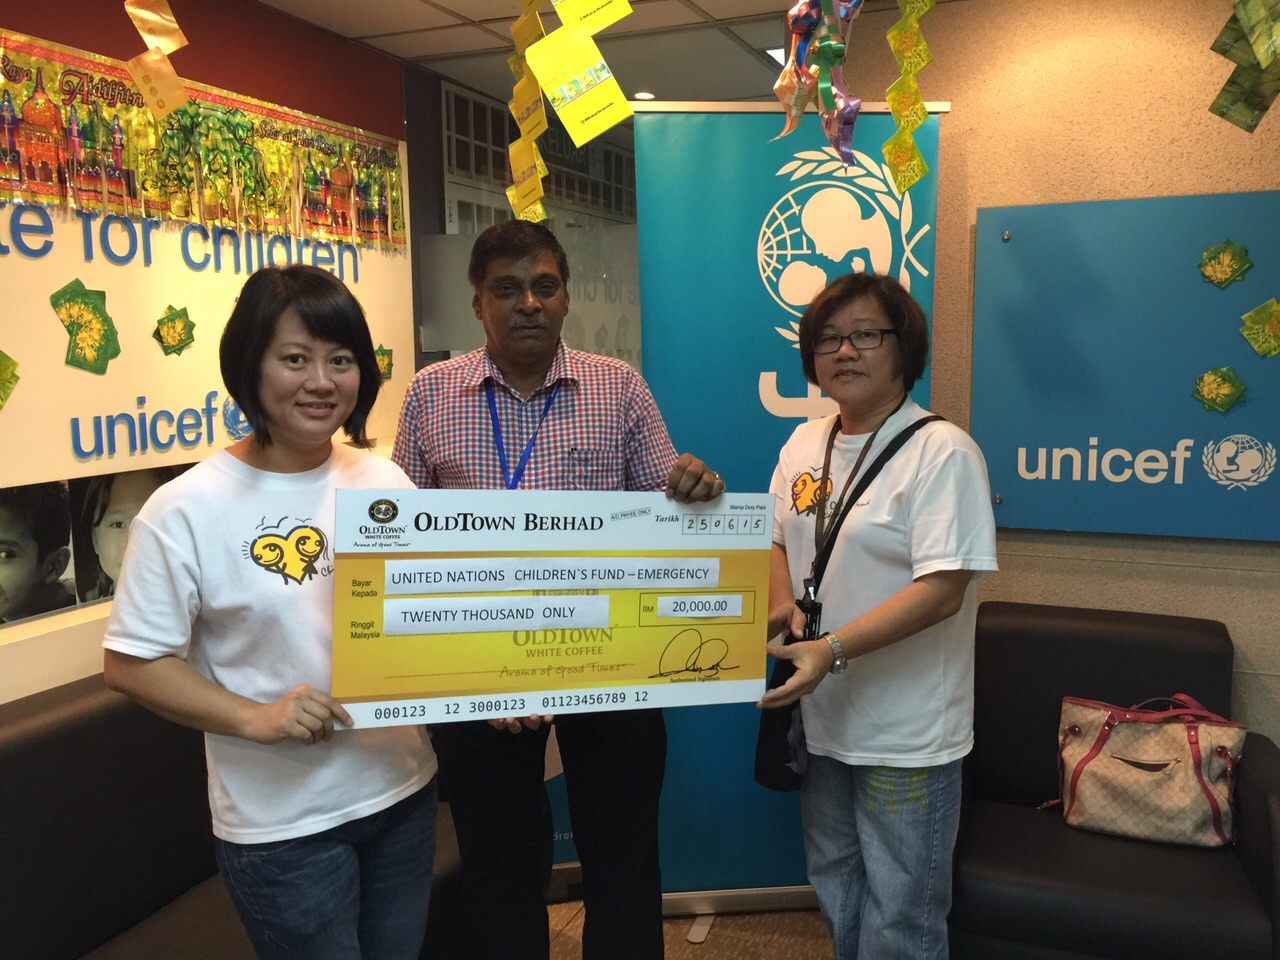 OCAF donated RM20,000 emergency aid fund to UNICEF Nepal Earthquake Children's Appeal.